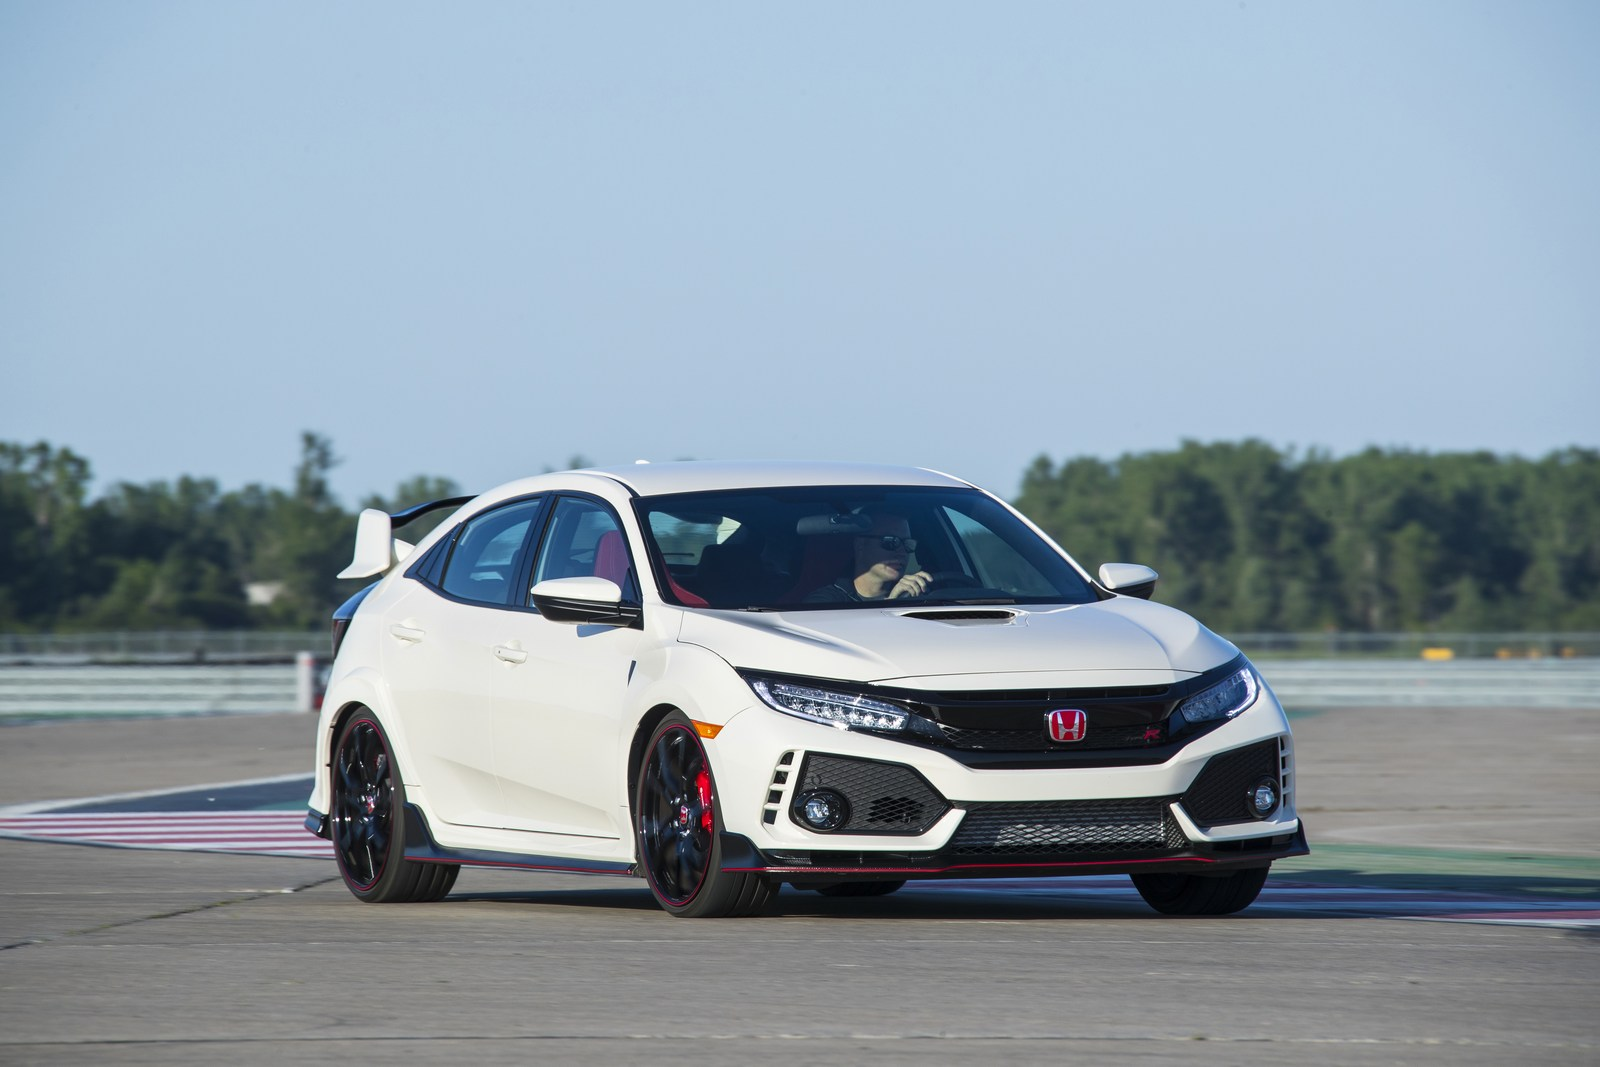 2018 honda civic type r price bumped to 34 100 no entry level carscoops. Black Bedroom Furniture Sets. Home Design Ideas